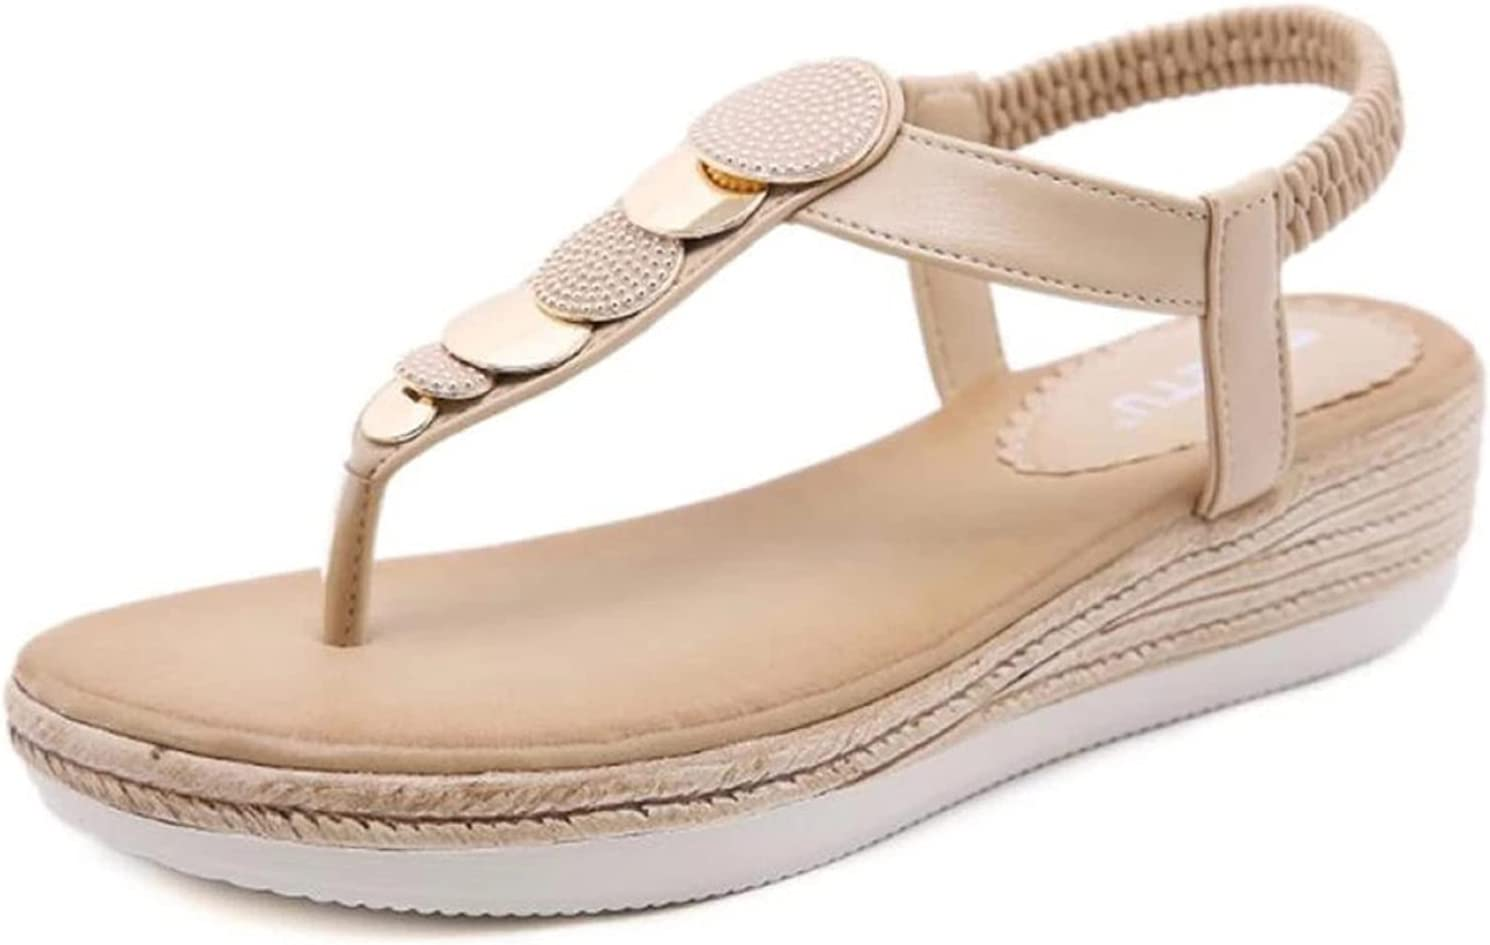 LyHomeAn Max 88% OFF Fashion Ladies Sandals He Slope low-pricing Women's Summer